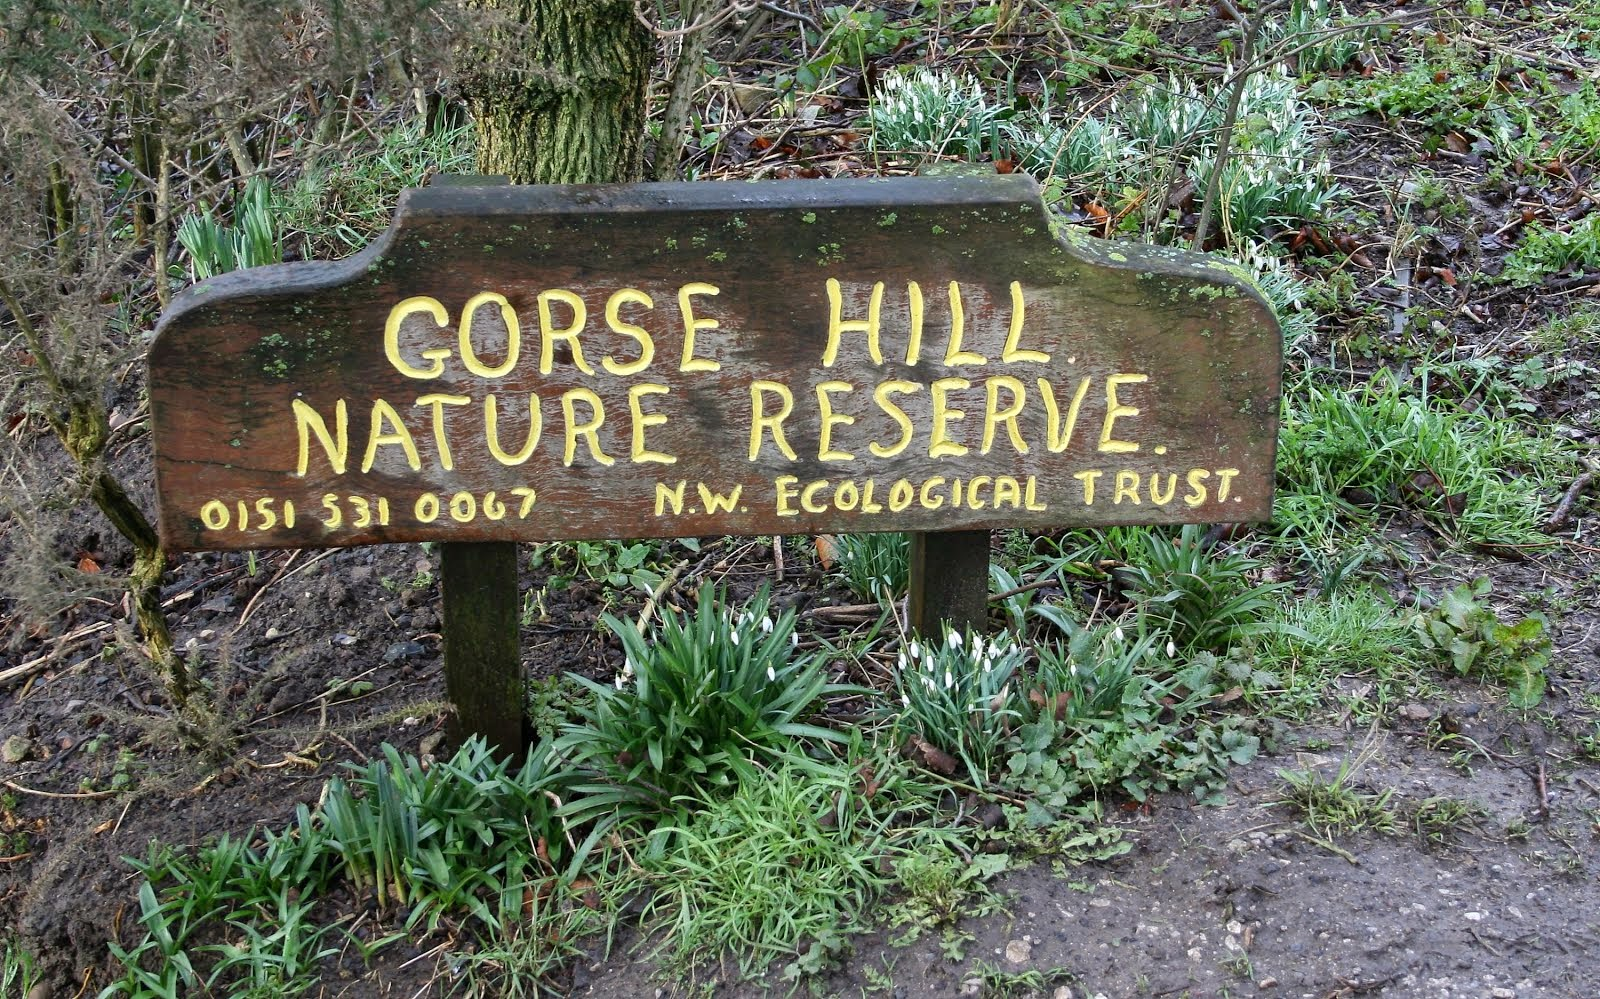 Gorse Hill Nature Reserve